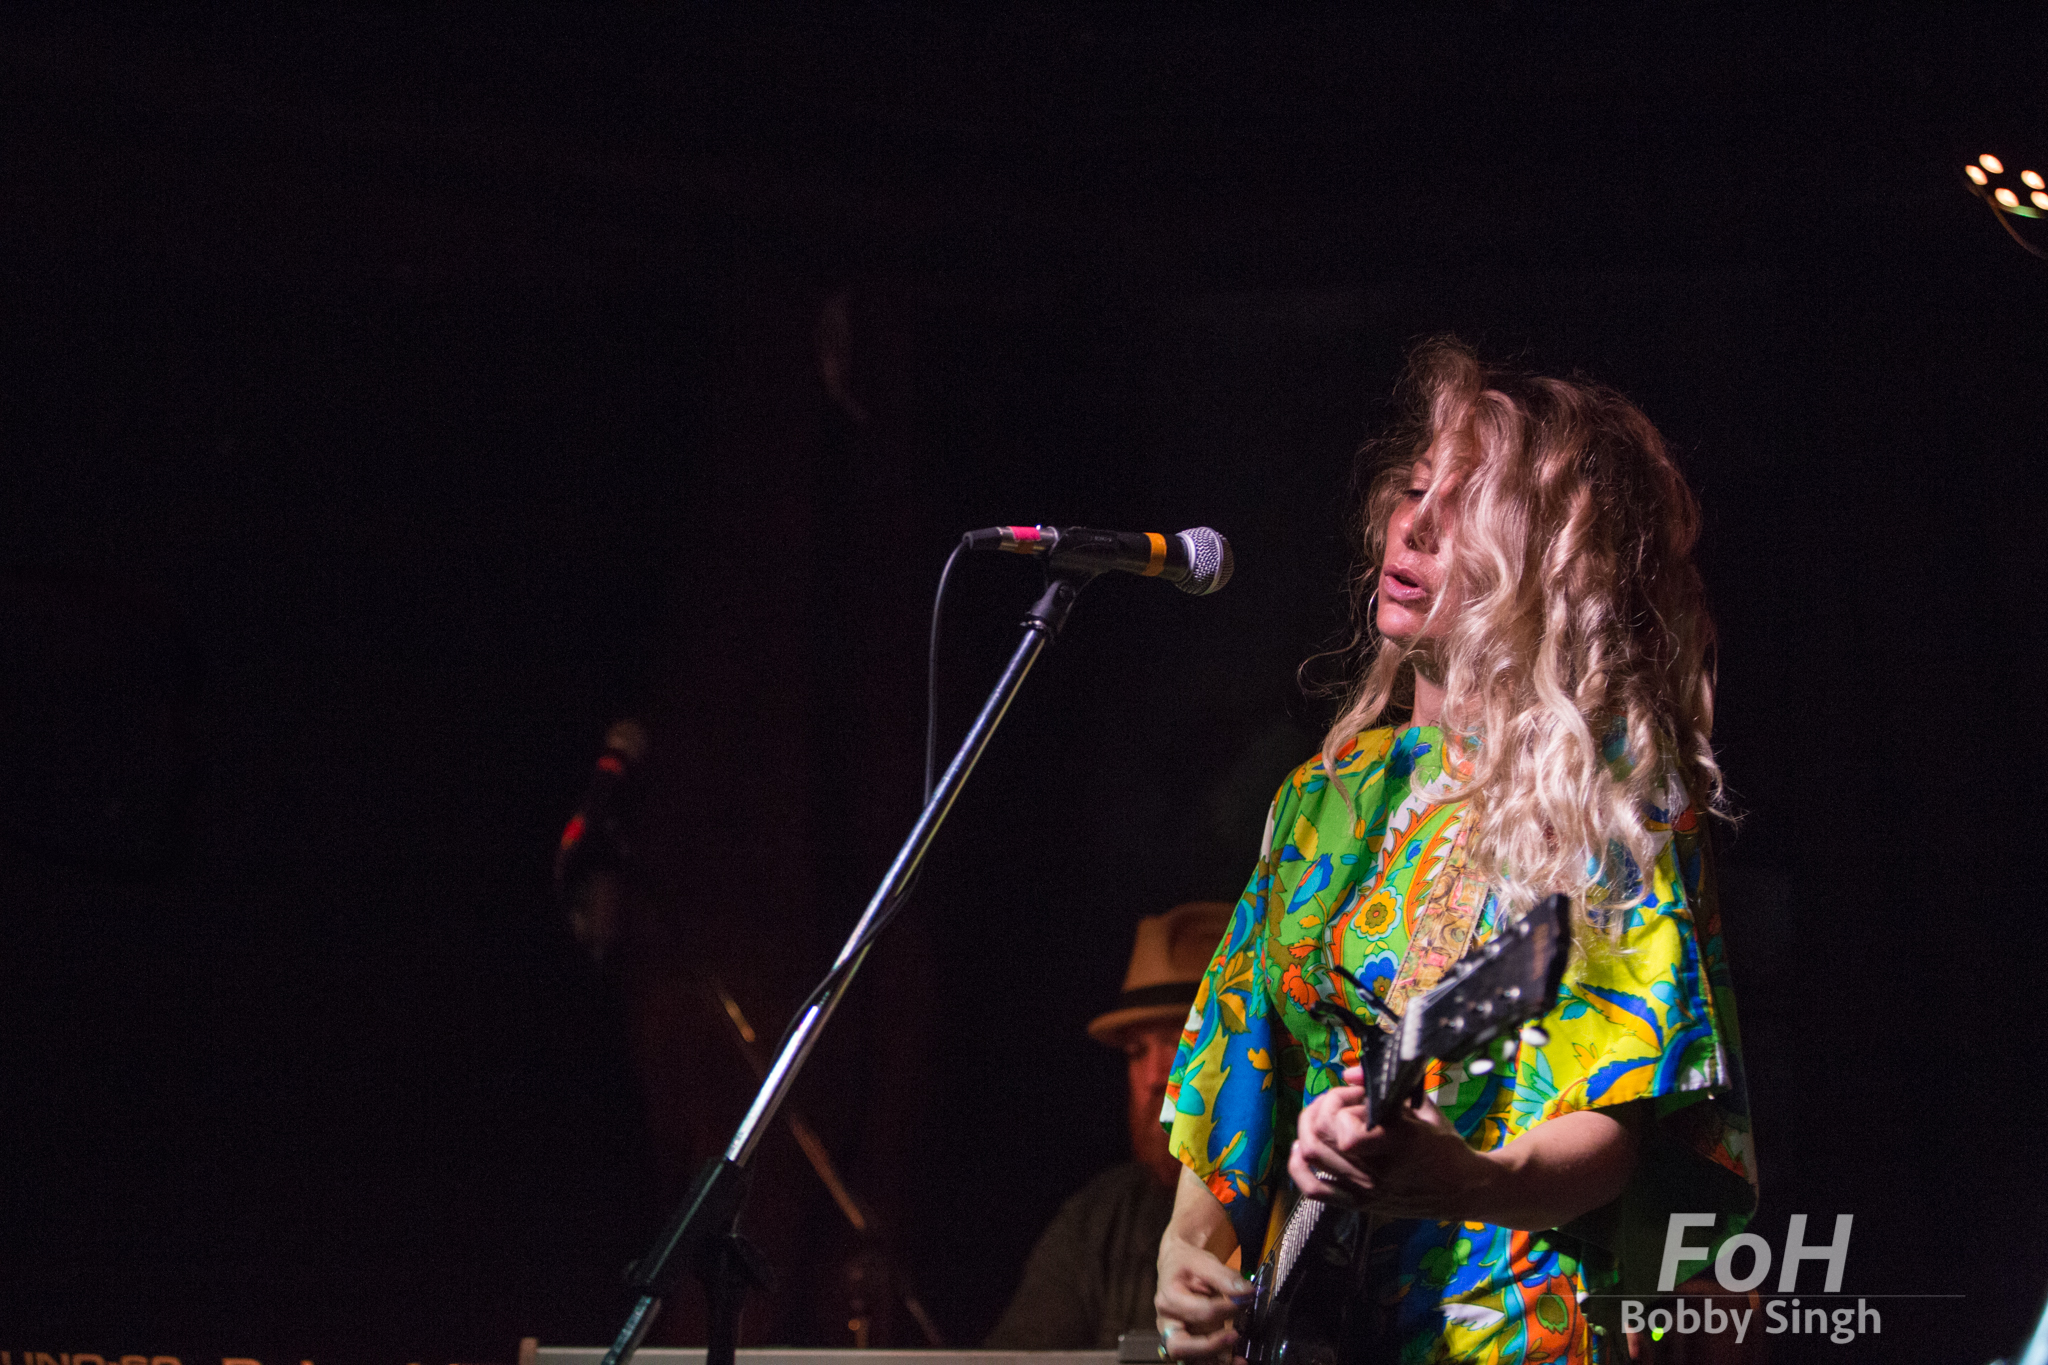 Kate Boothman - This Ain't Hollywood, Hamilton. Photo by Bobby Singh/ @fohphoto